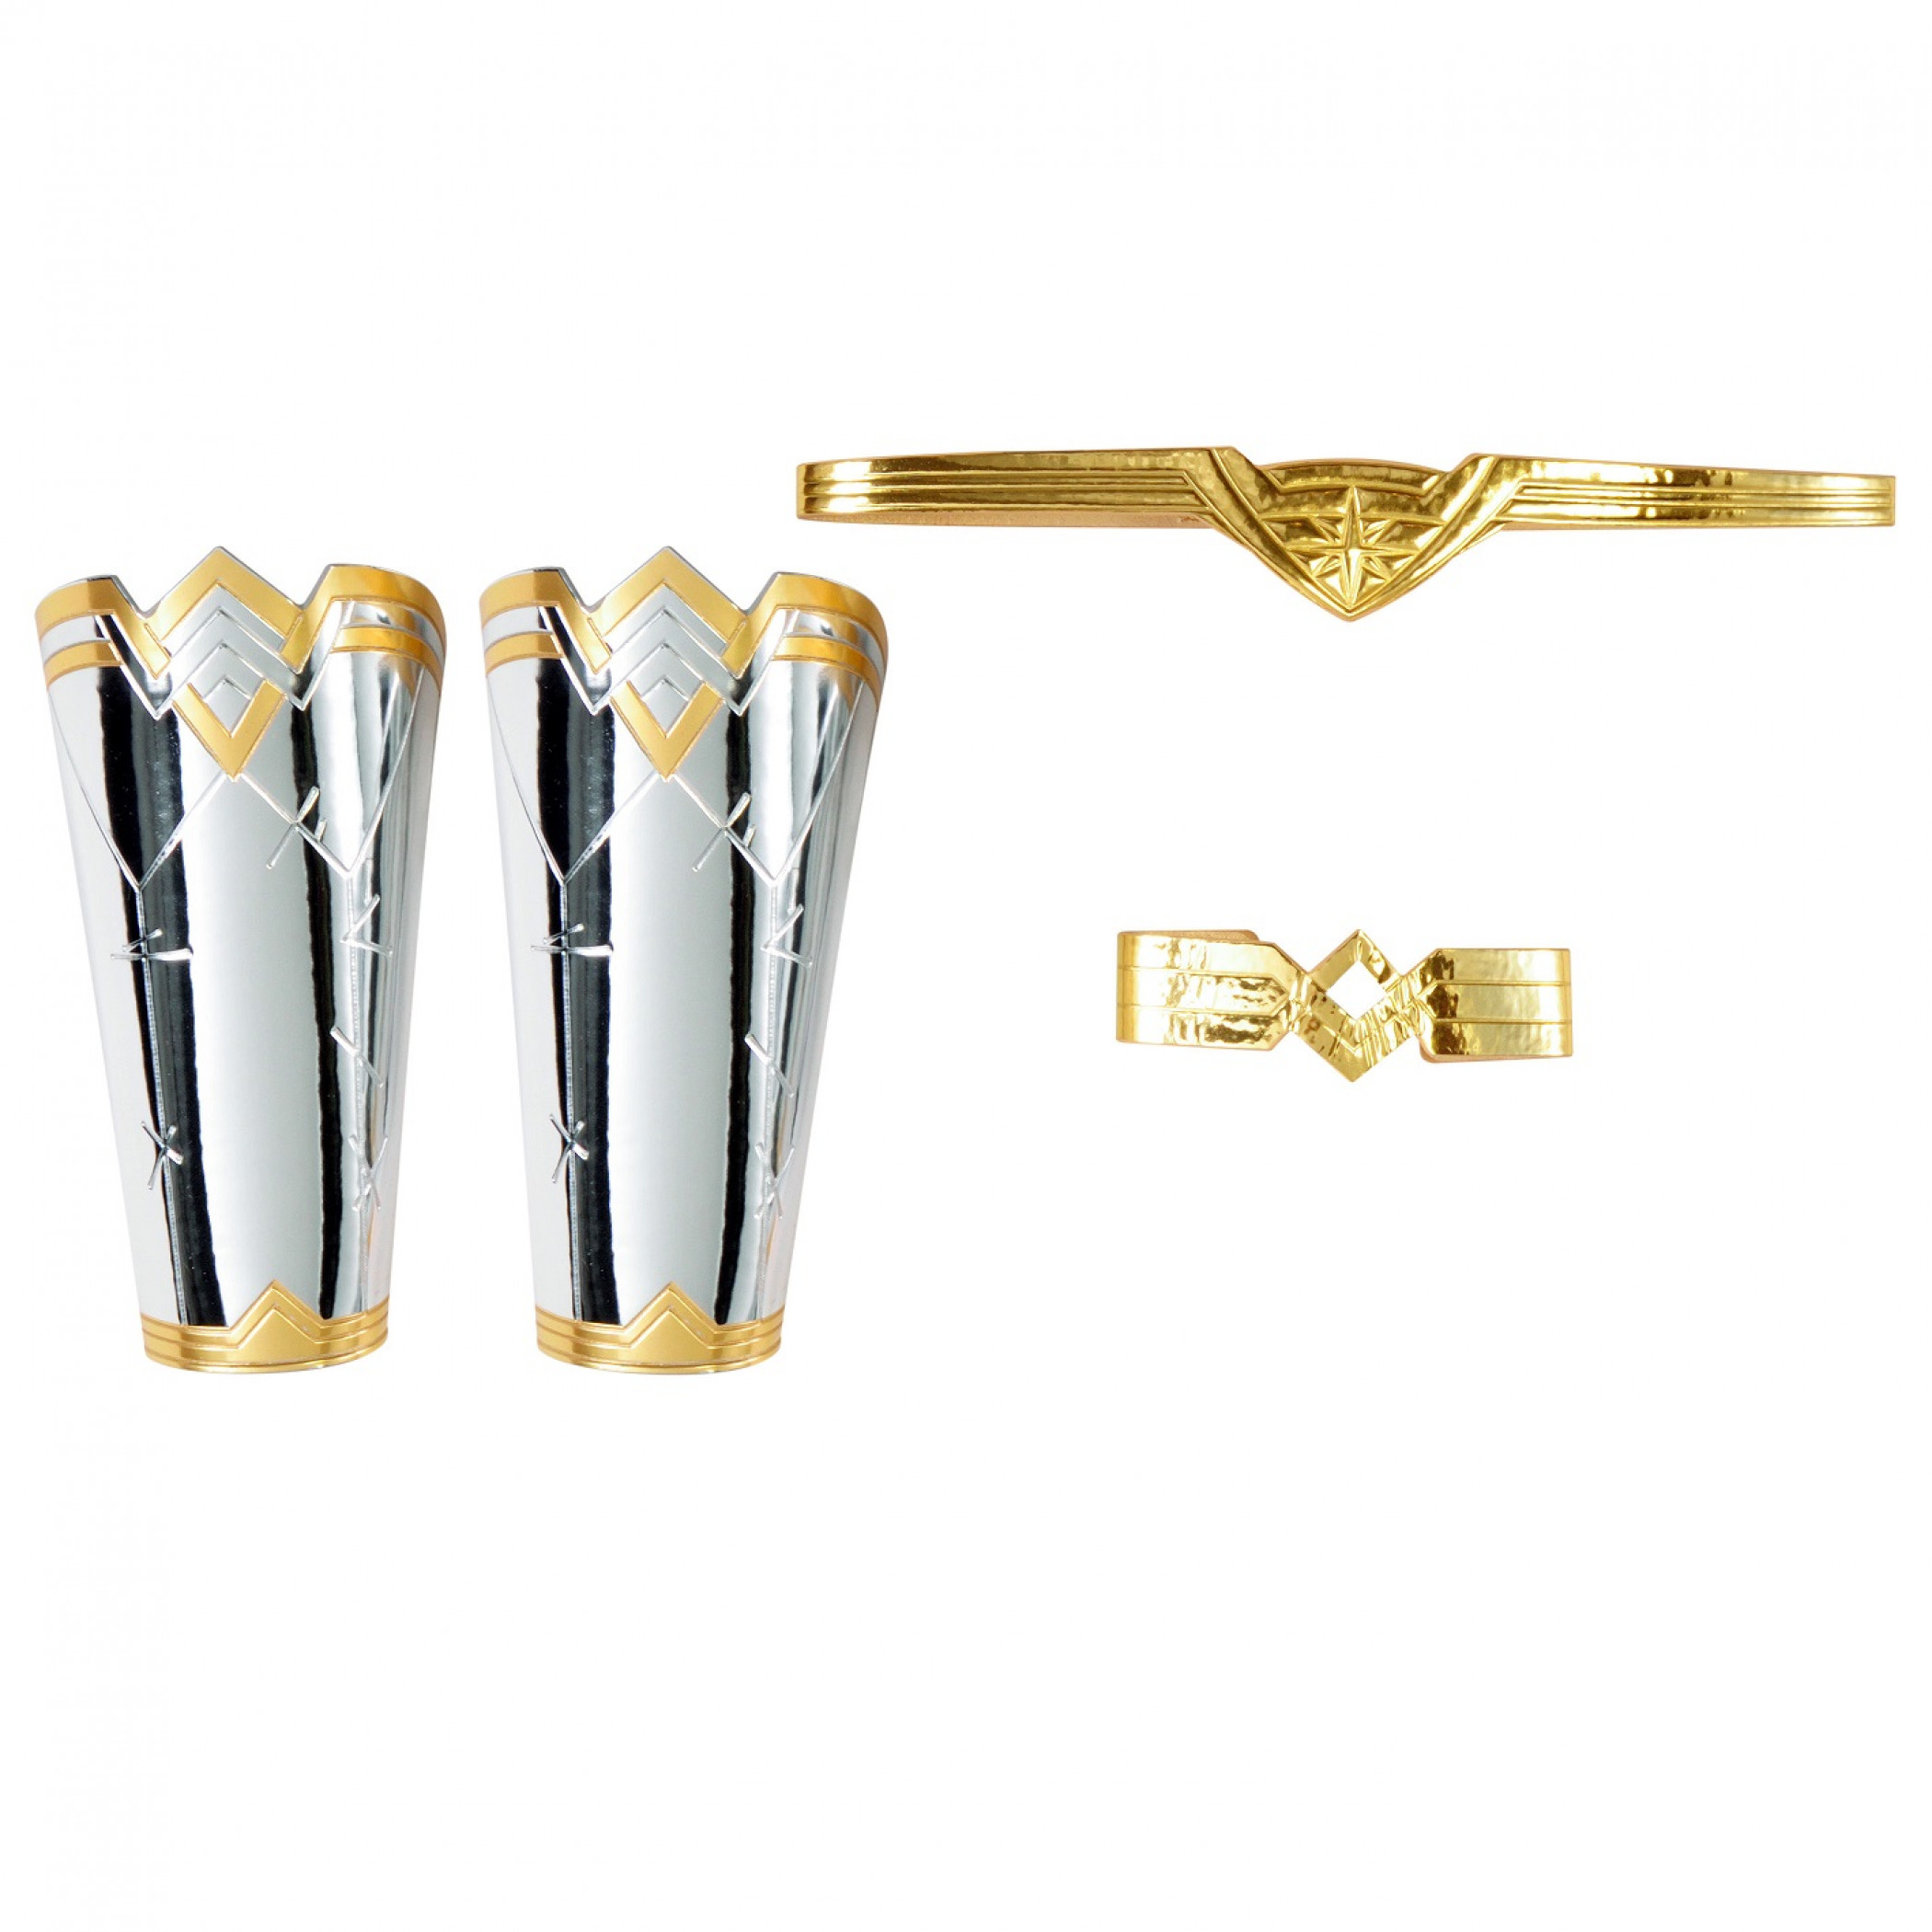 Wonder Woman Adult Accessories Tiara, Gauntlets, and Armband Kit